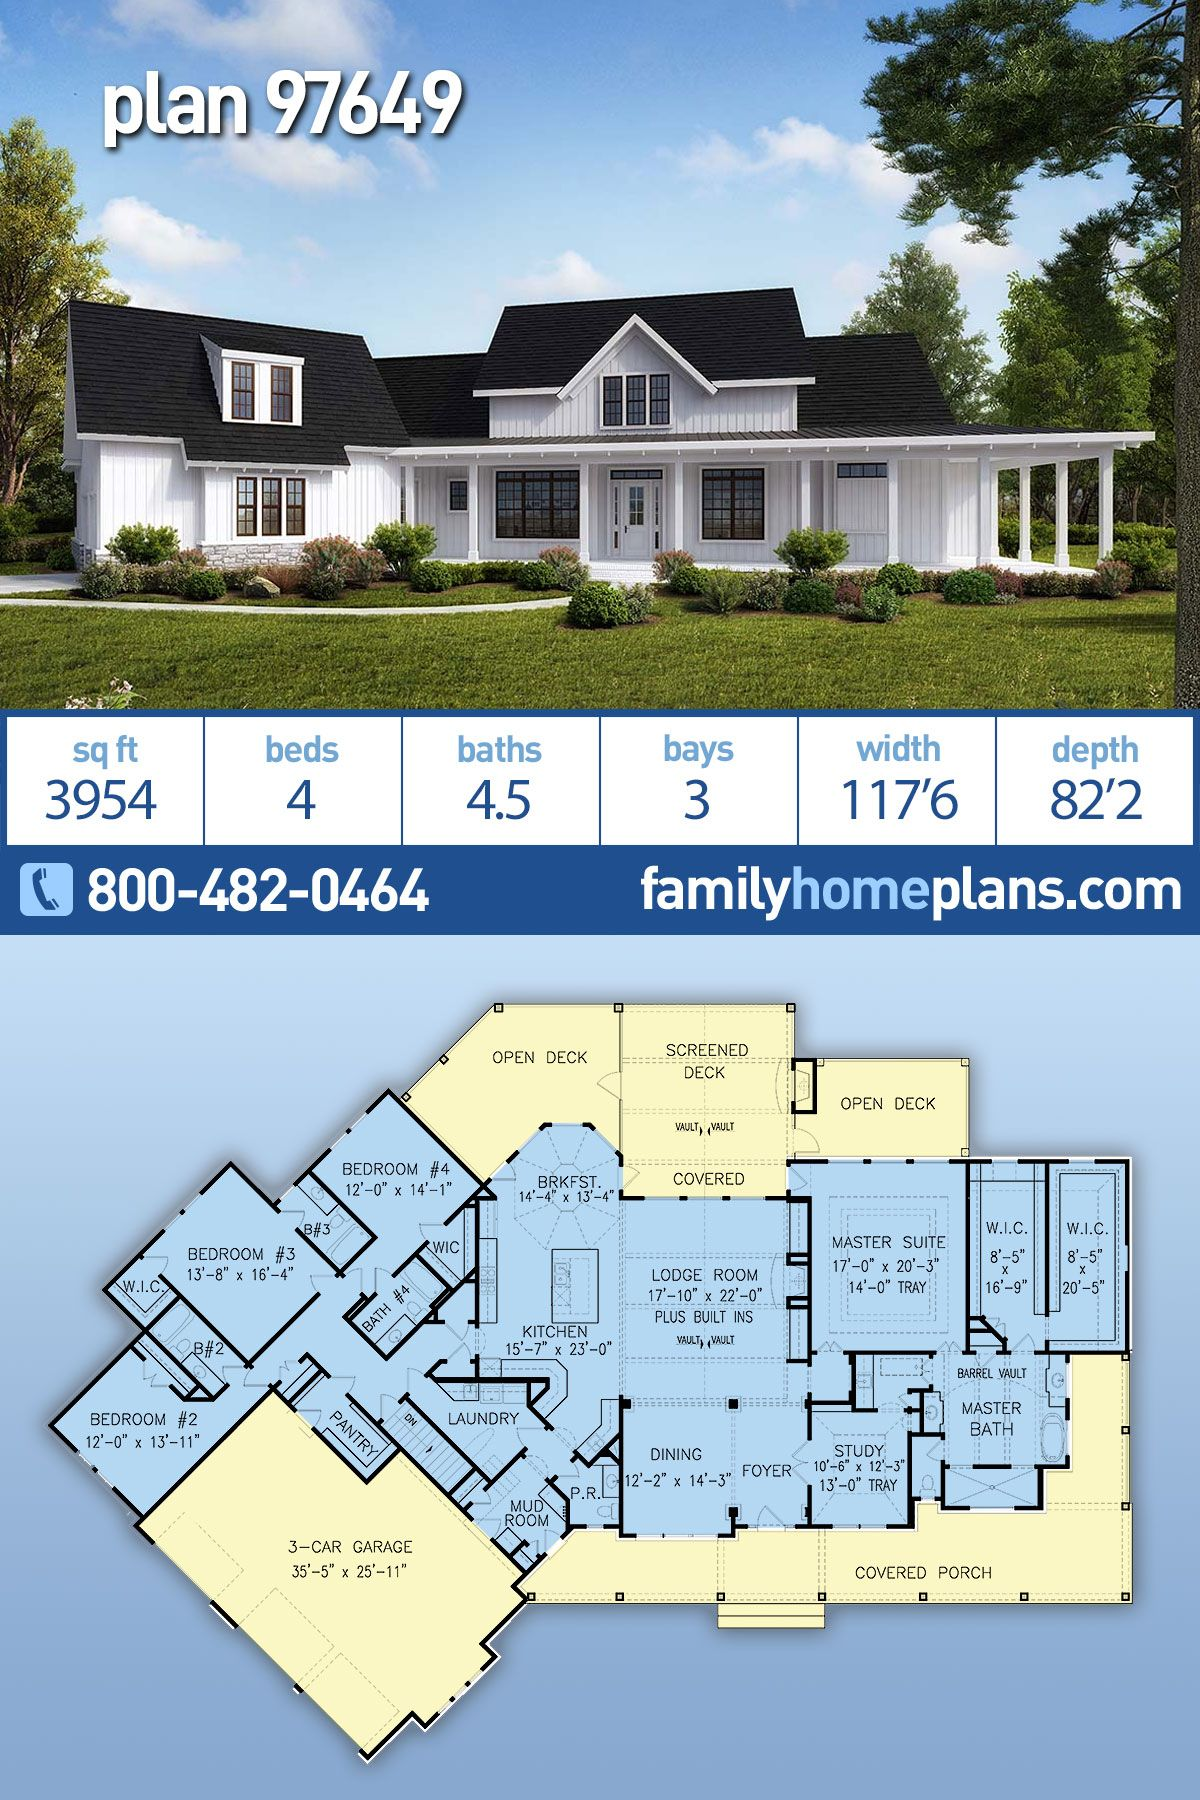 Southern Style House Plan 97649 With 4 Bed 5 Bath 3 Car Garage House Plans Farmhouse Farmhouse Plans Dream House Plans